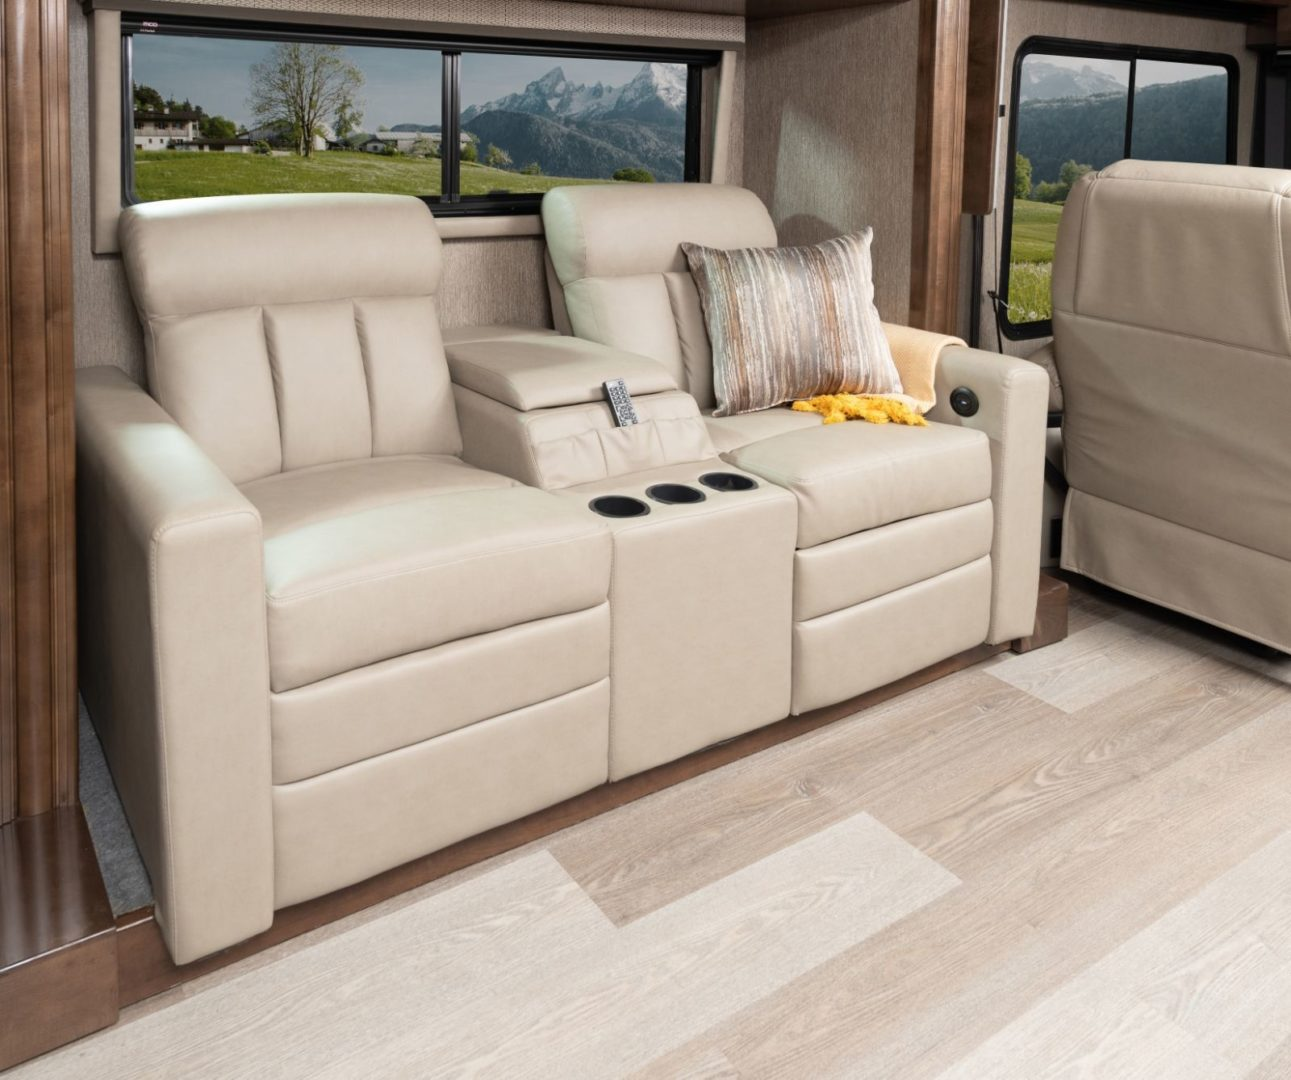 Nautica 34RX Coppe Ridge with Amber Cabinetry